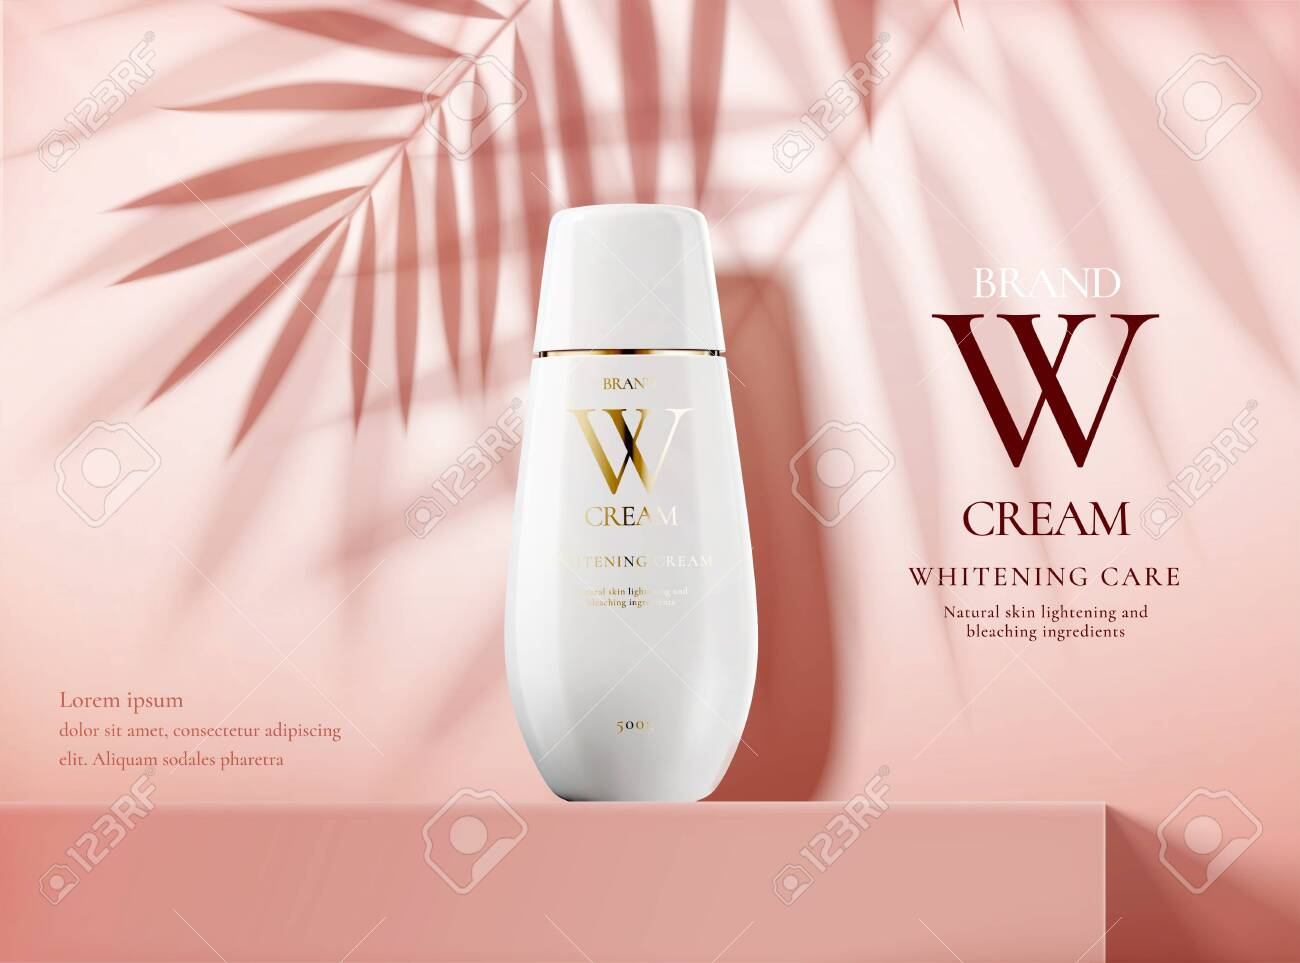 Skin care product ads with white bottle on pink square podium stage and palm leaves shadows in 3d illustration - 131645224